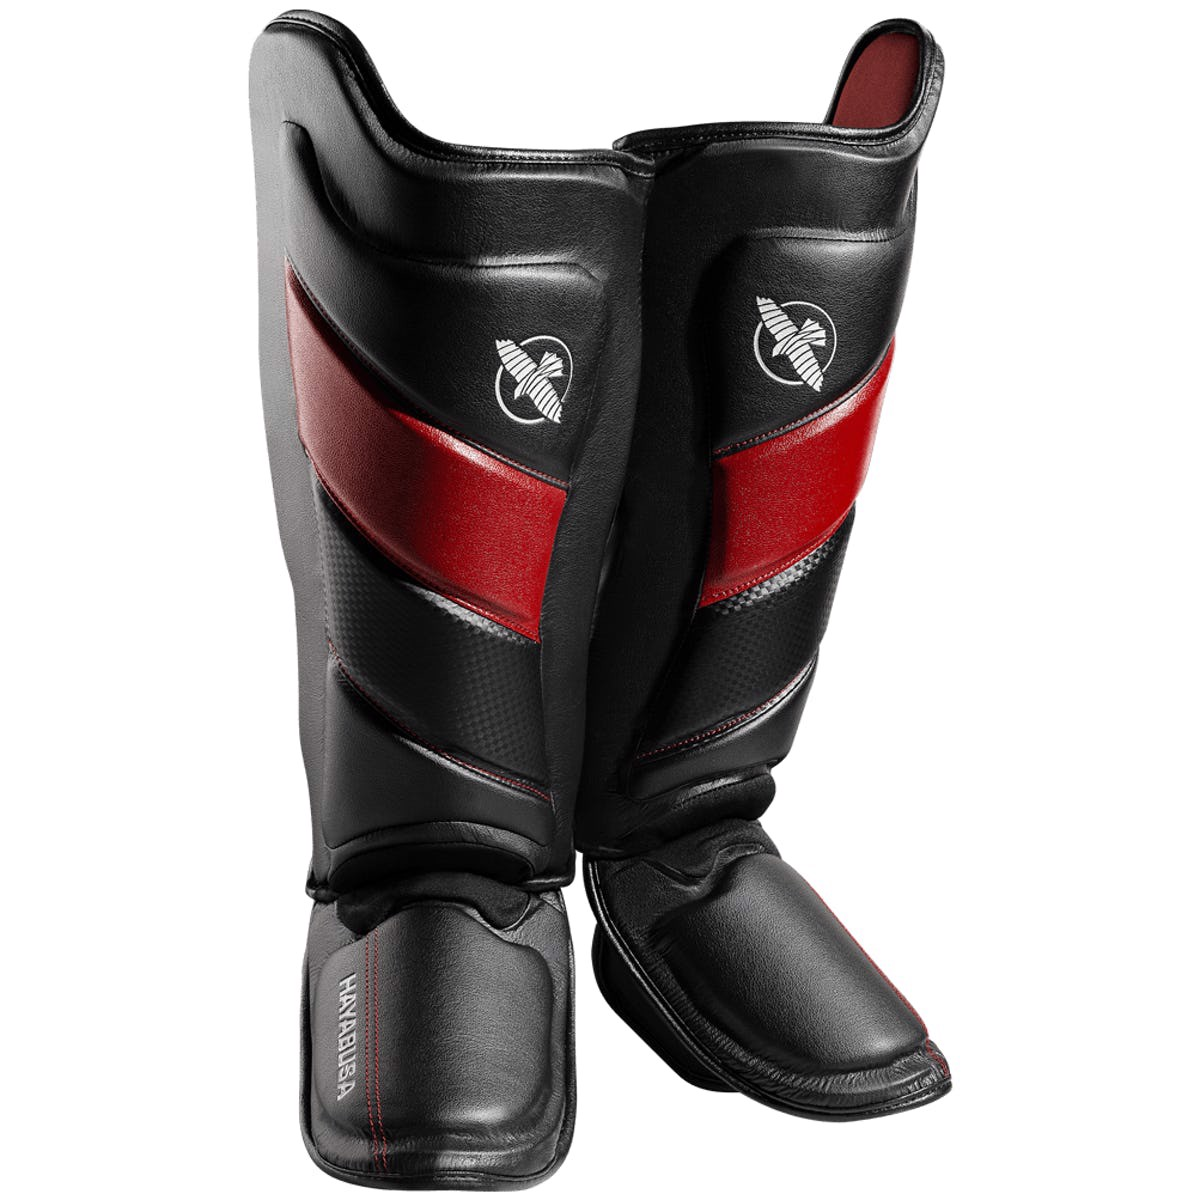 Bảo Hộ Chân Hayabusa T3 Striking Shin Guards - Black/Red